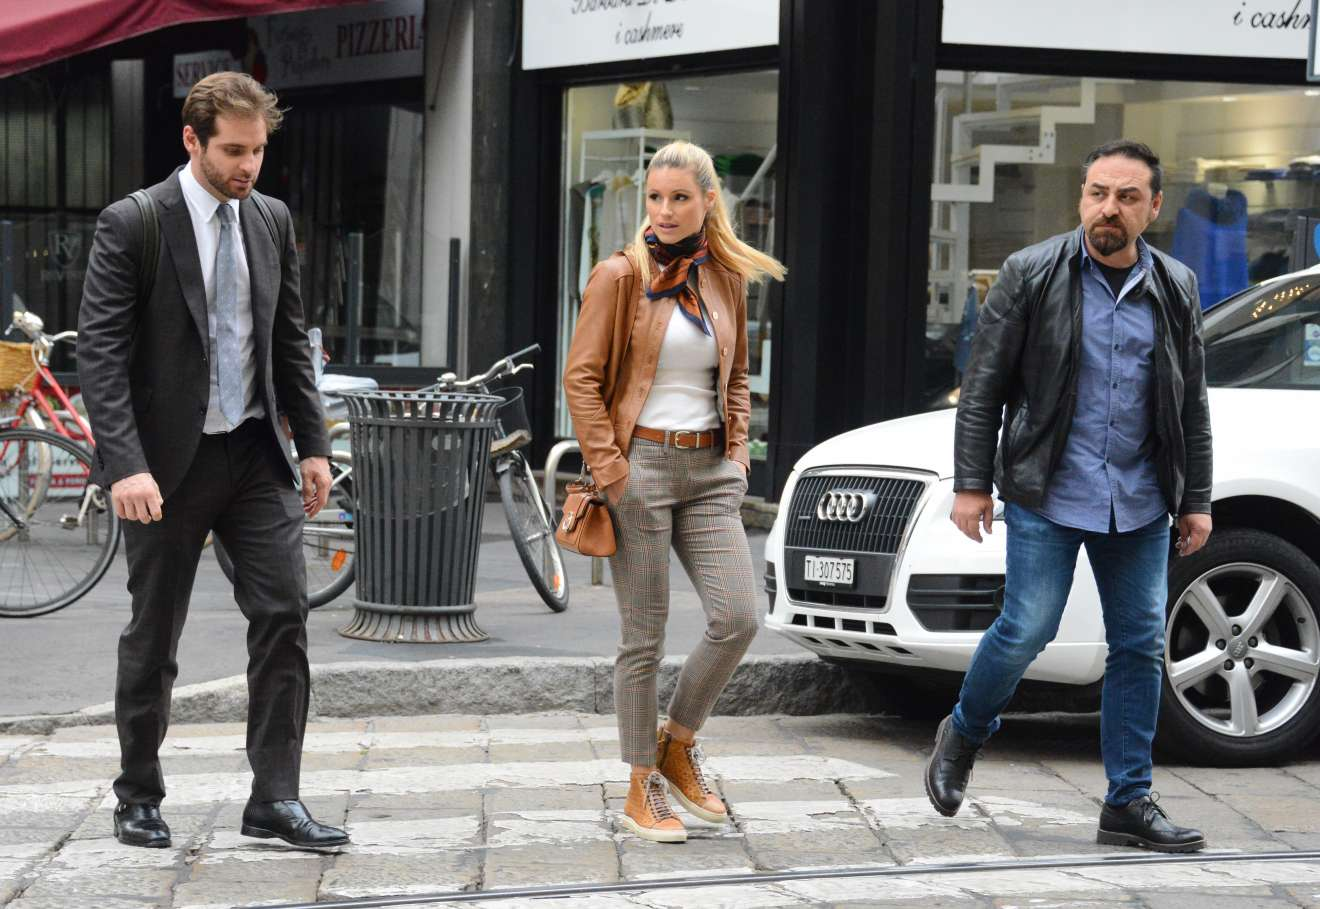 pictures Michelle hunziker and tomaso trussardi at kartell store in milan